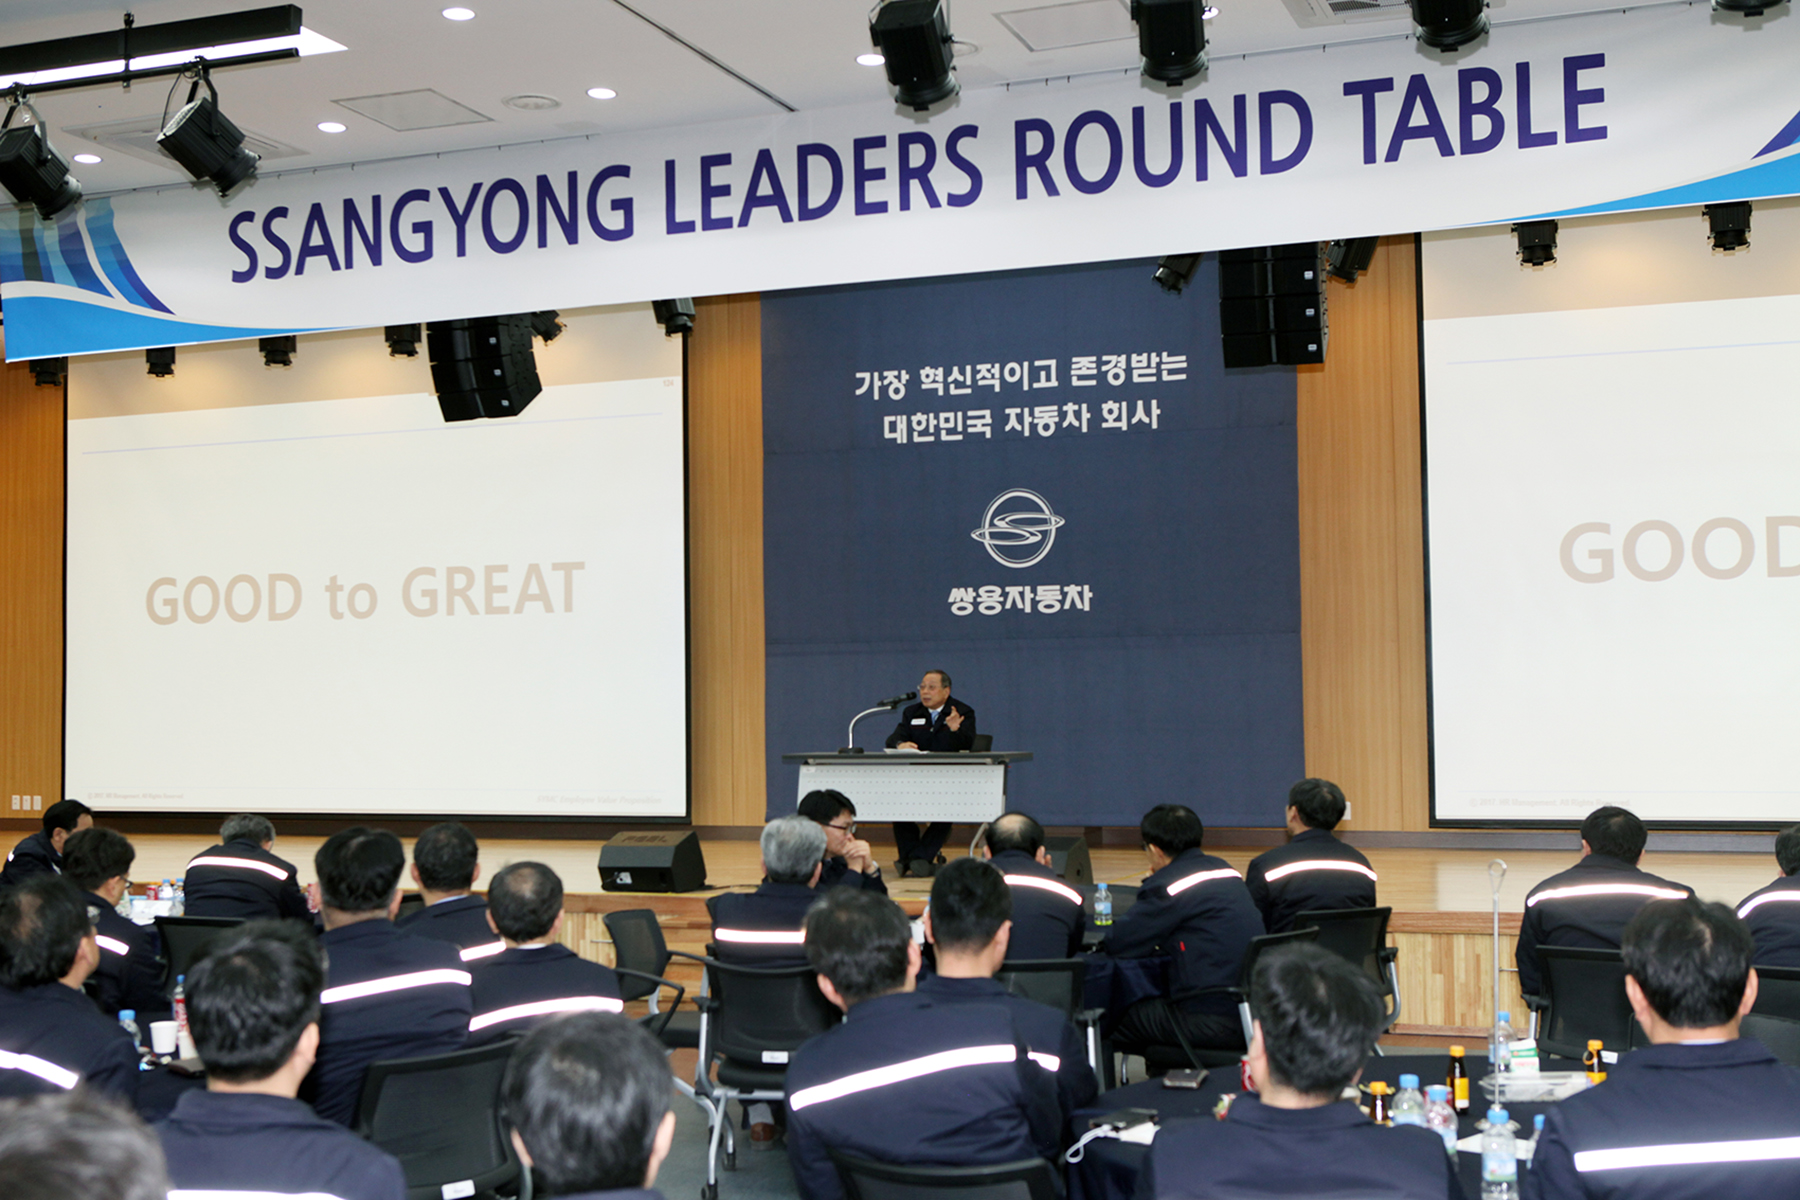 Choi Johng-sik, CEO of Ssangyong Motor talking with senior managers who attended the event.